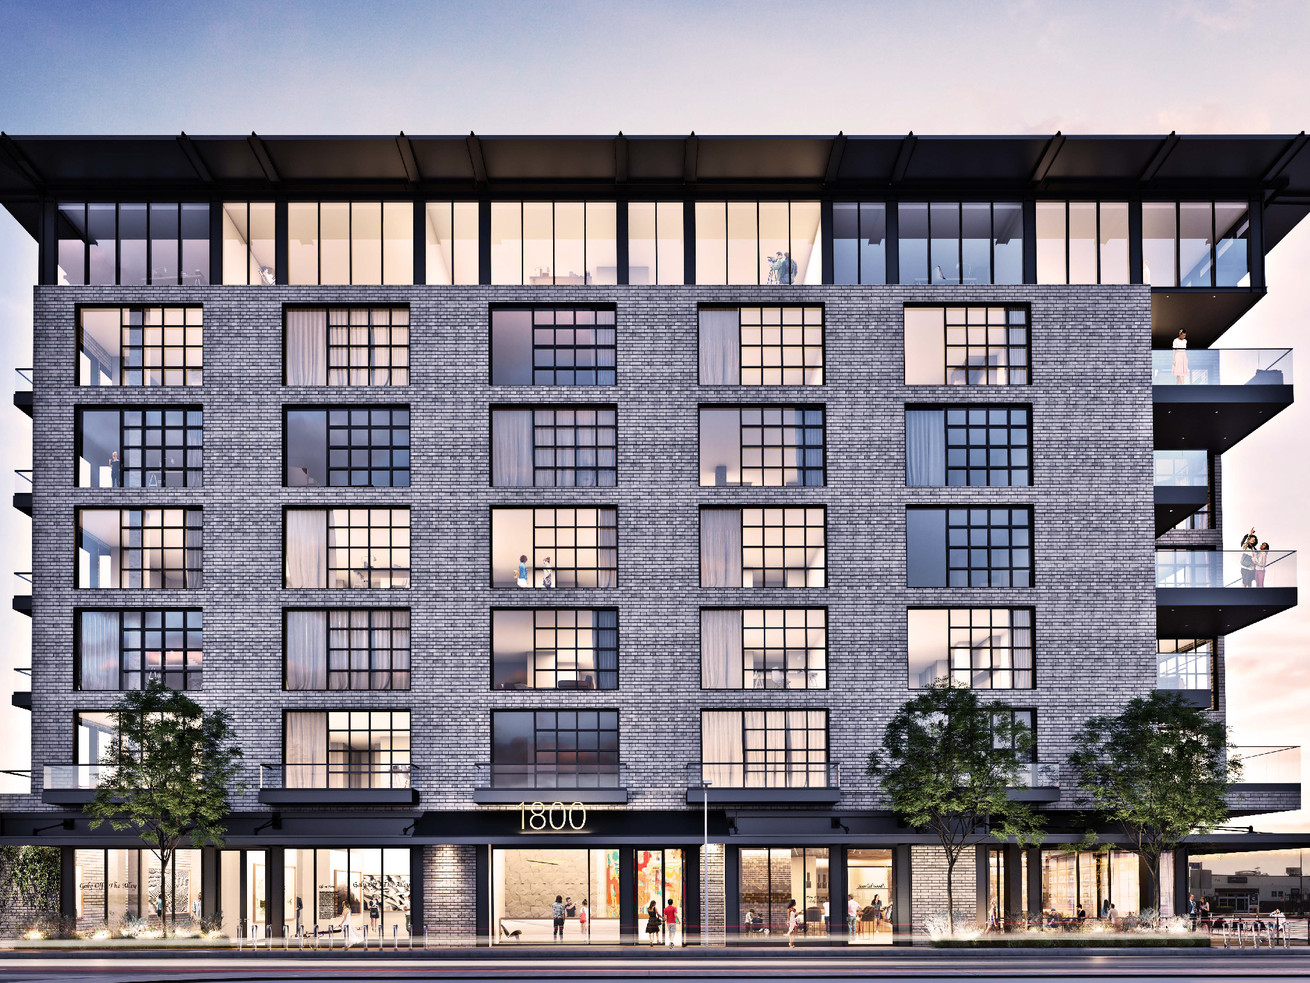 The seven-story building with 122 live-work lofts planned for 1800 East Seventh Street.